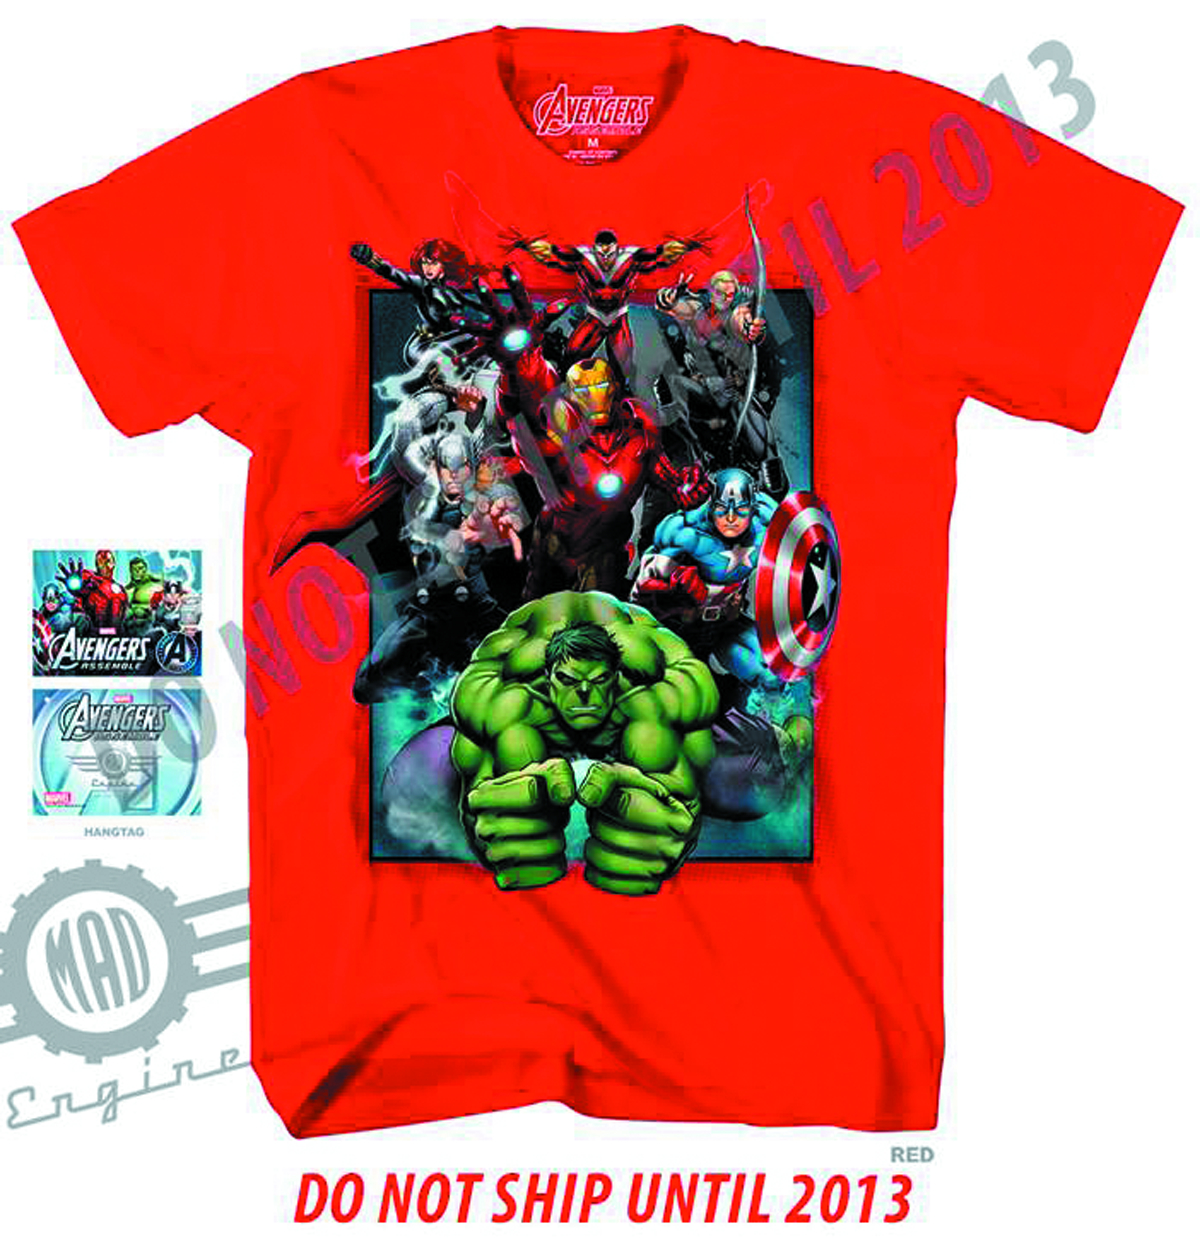 AVENGERS ASSEMBLE BOXED IN RED T/S LG